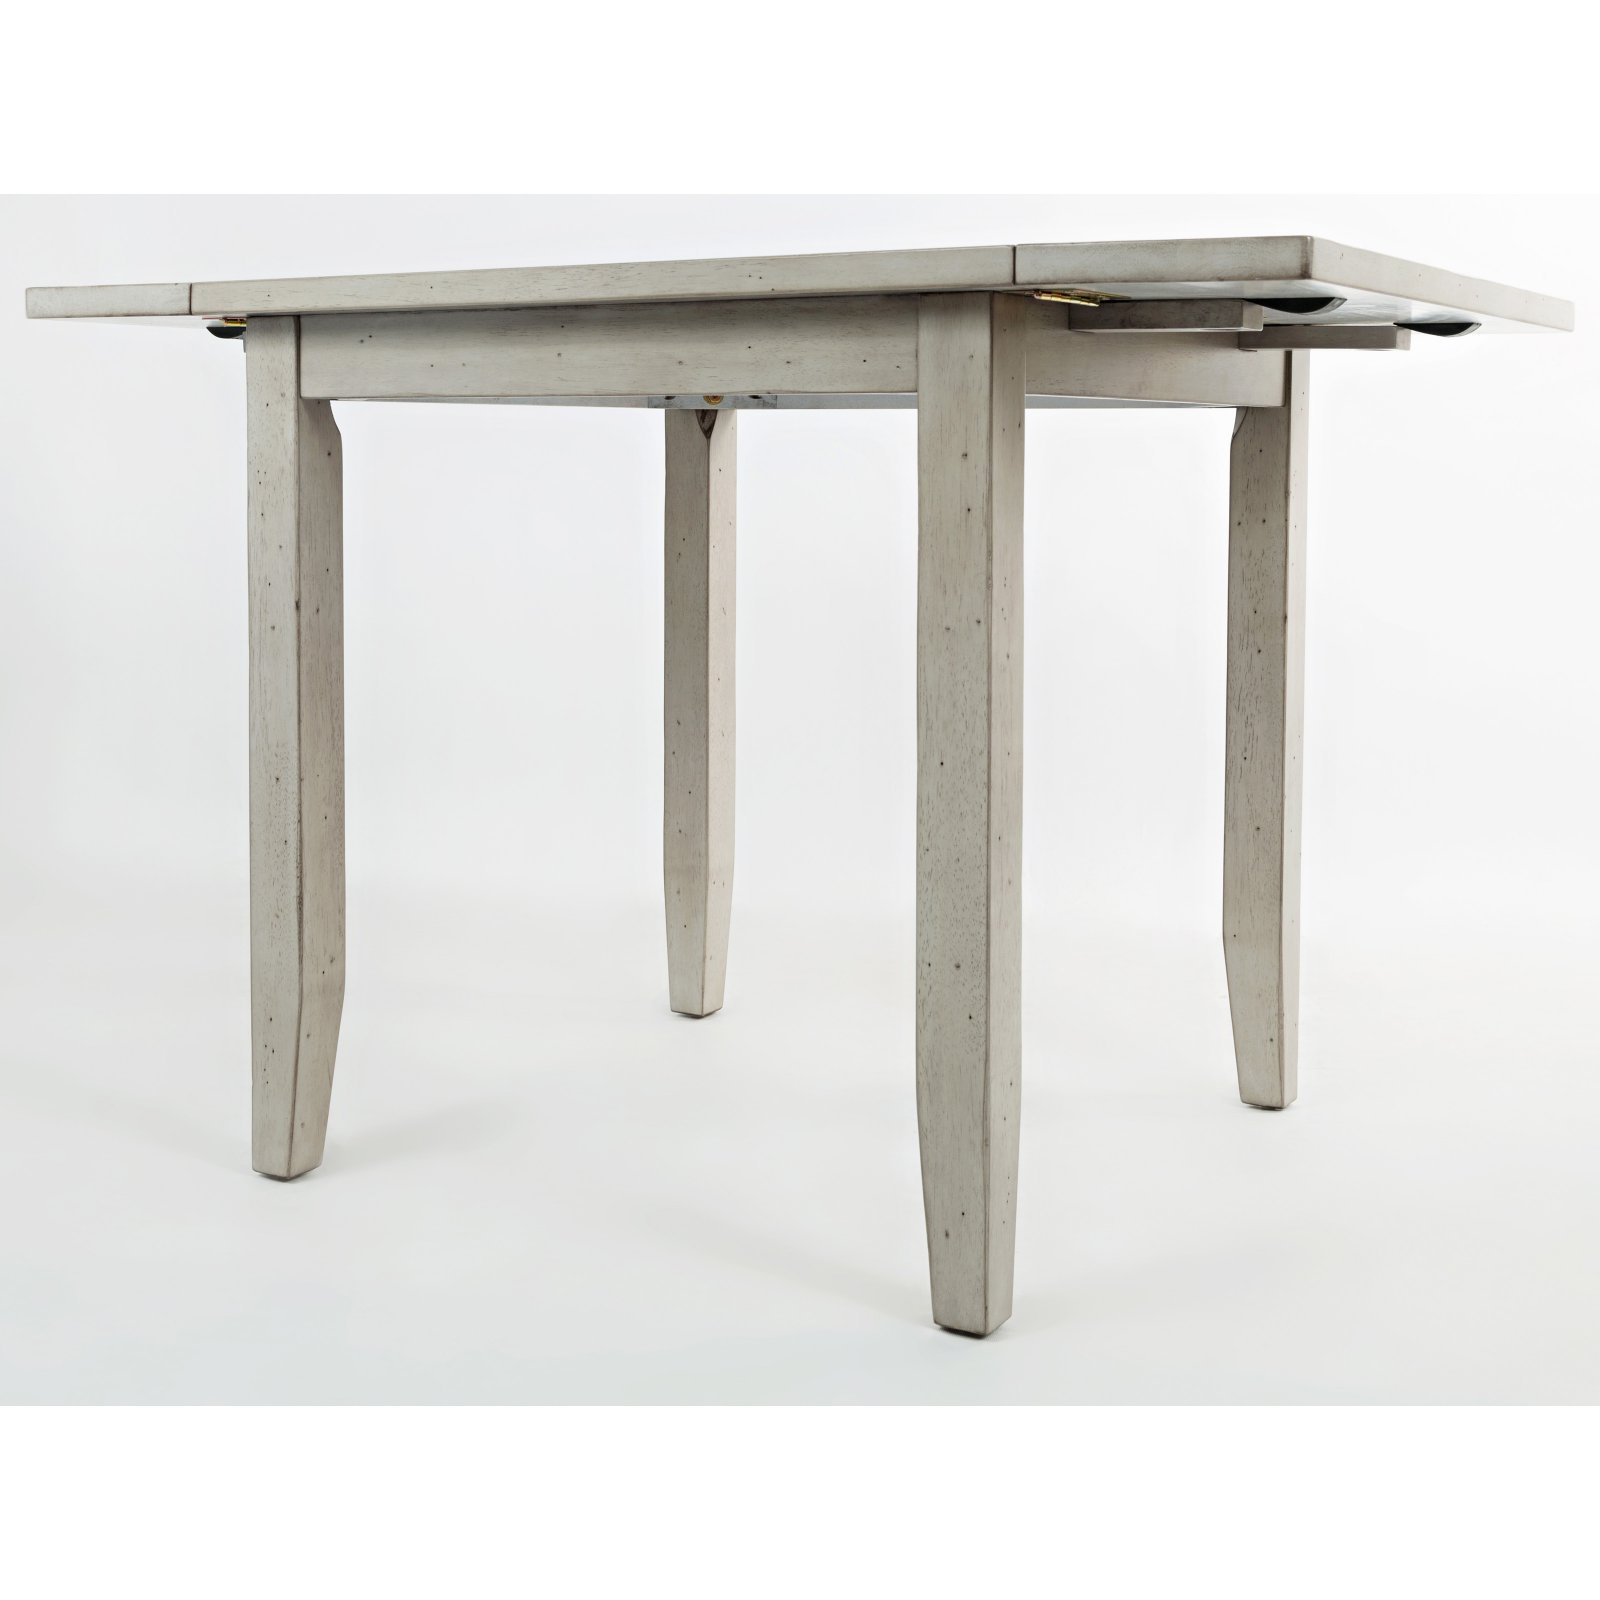 Well Liked Transitional 4 Seating Double Drop Leaf Casual Dining Tables Inside Jofran Sarasota Springs Tiled Drop Leaf Table – Walmart (View 23 of 25)